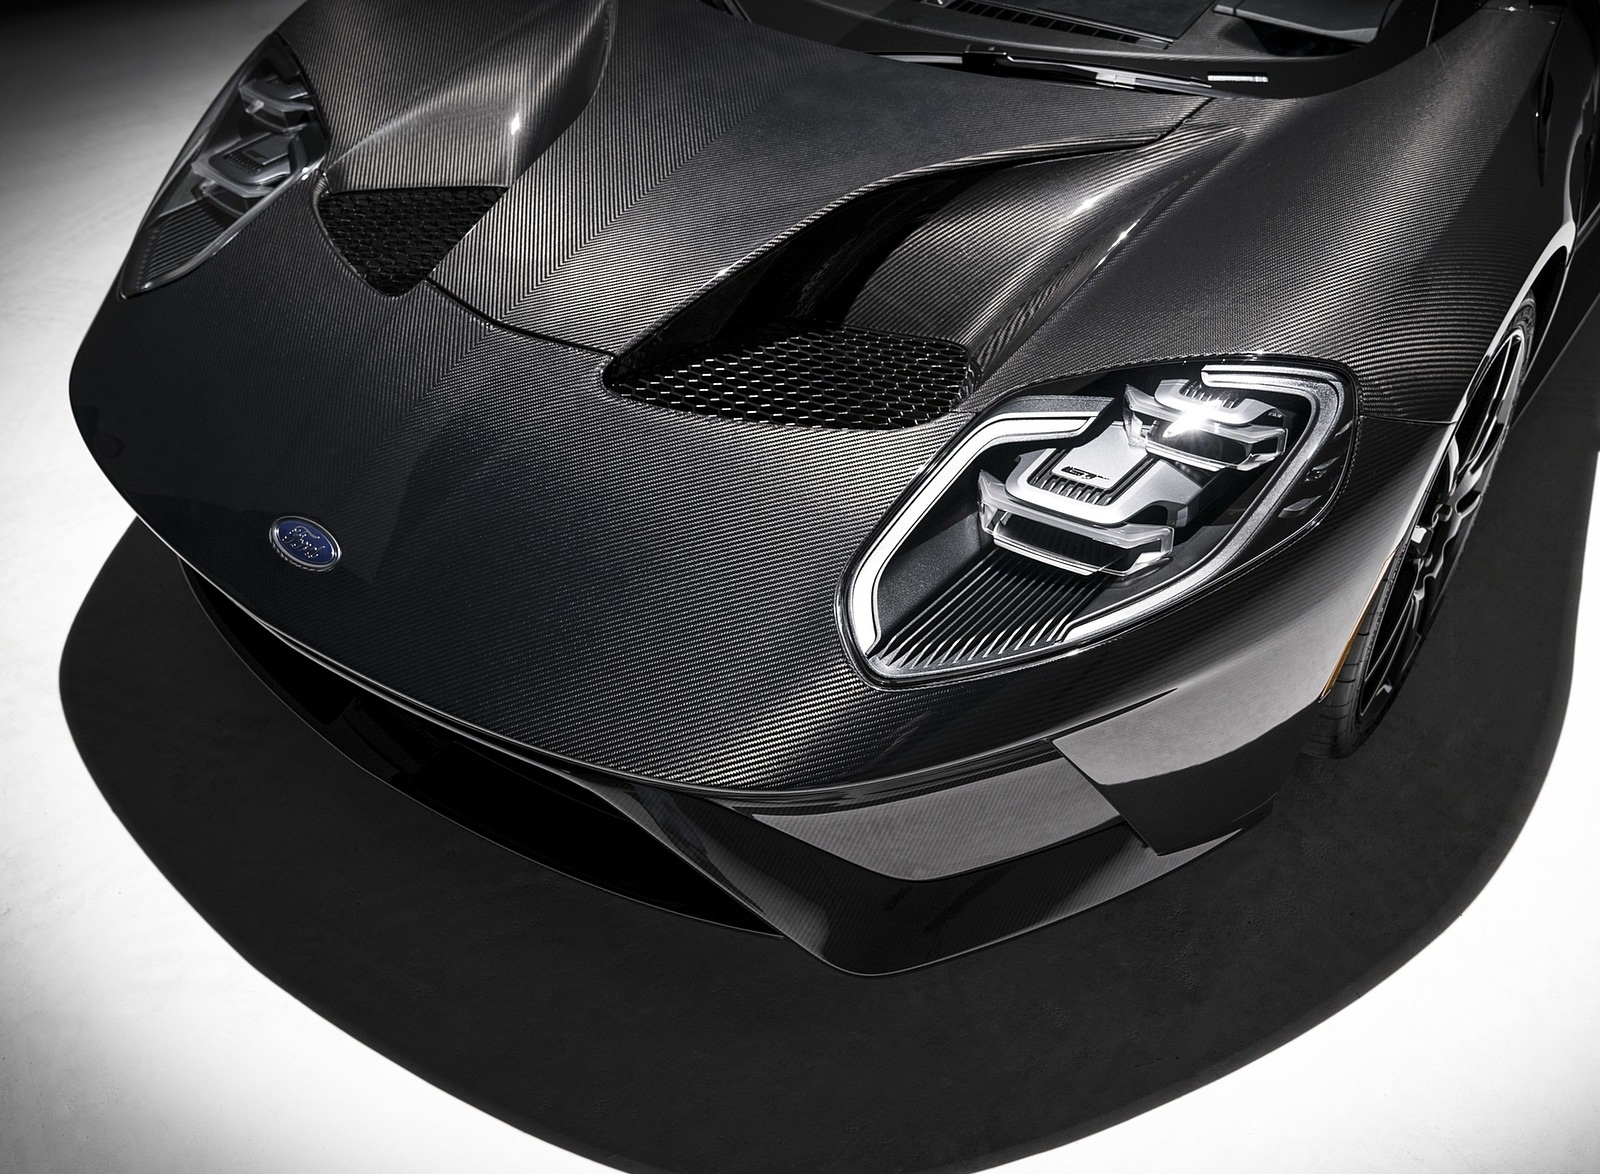 2020 Ford GT Liquid Carbon Detail Wallpapers (8)